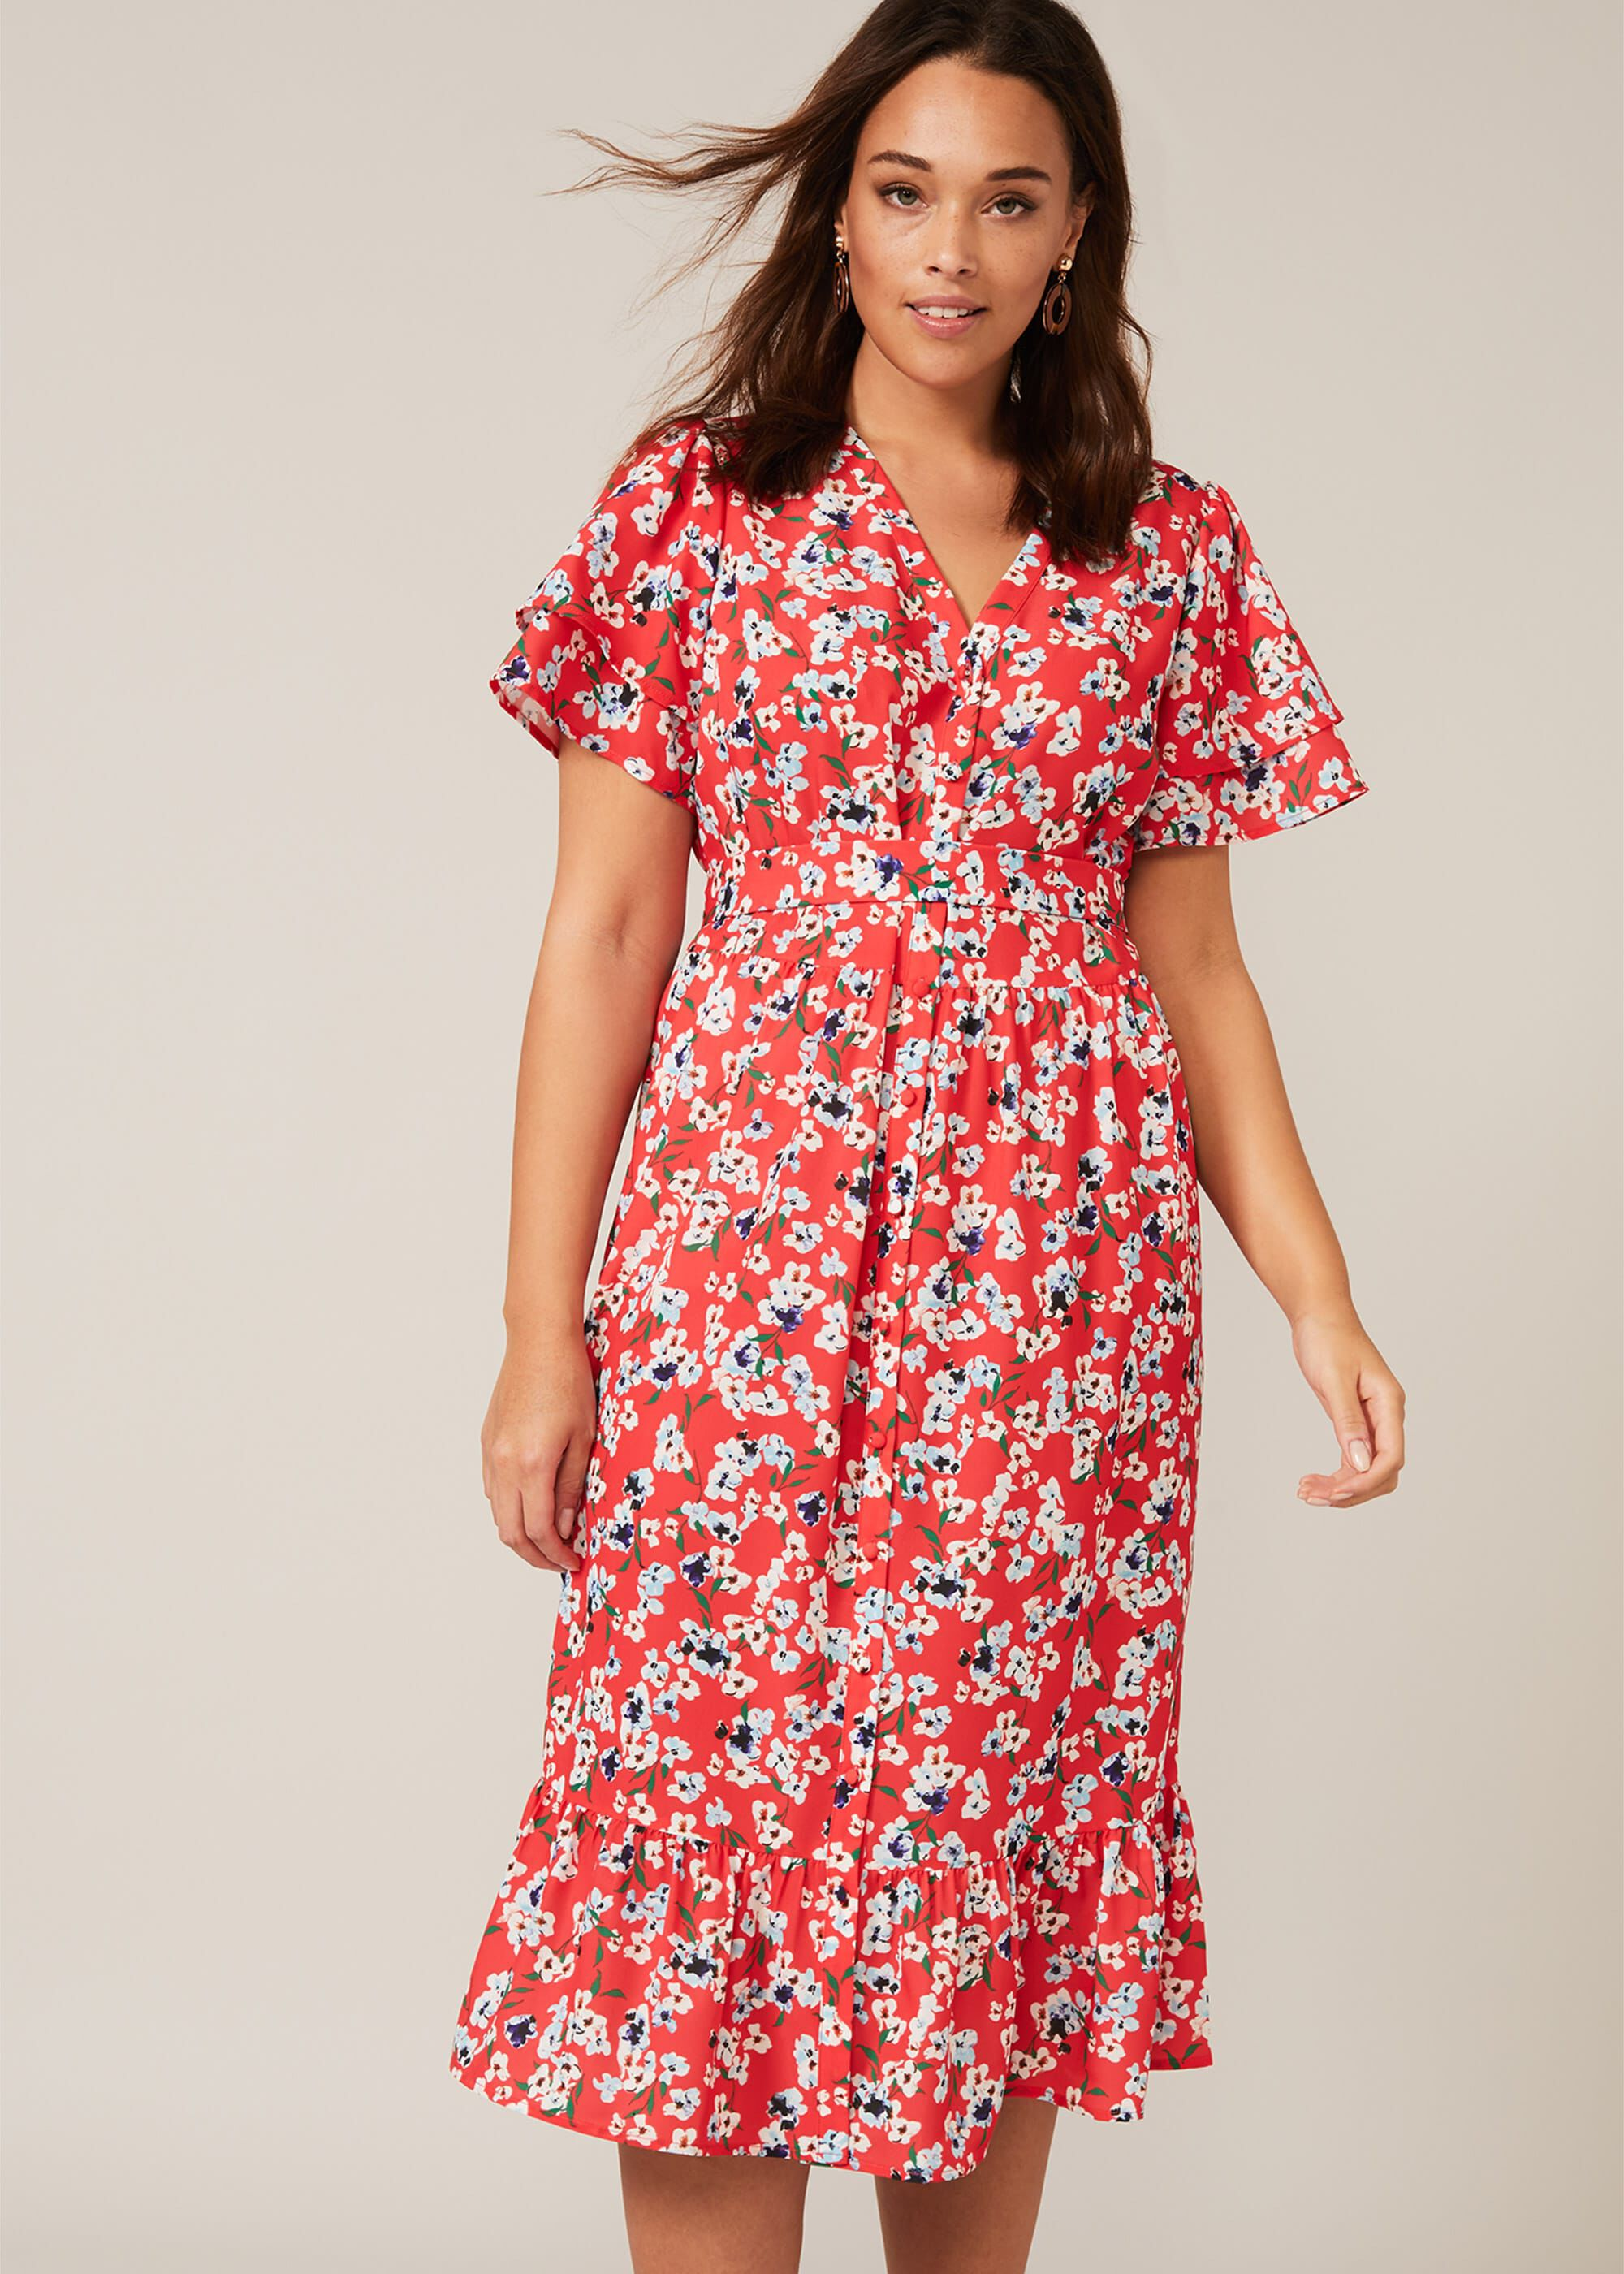 Studio 8 Claudette Ditsy Floral Dress, Red, Shirt, Occasion Dress